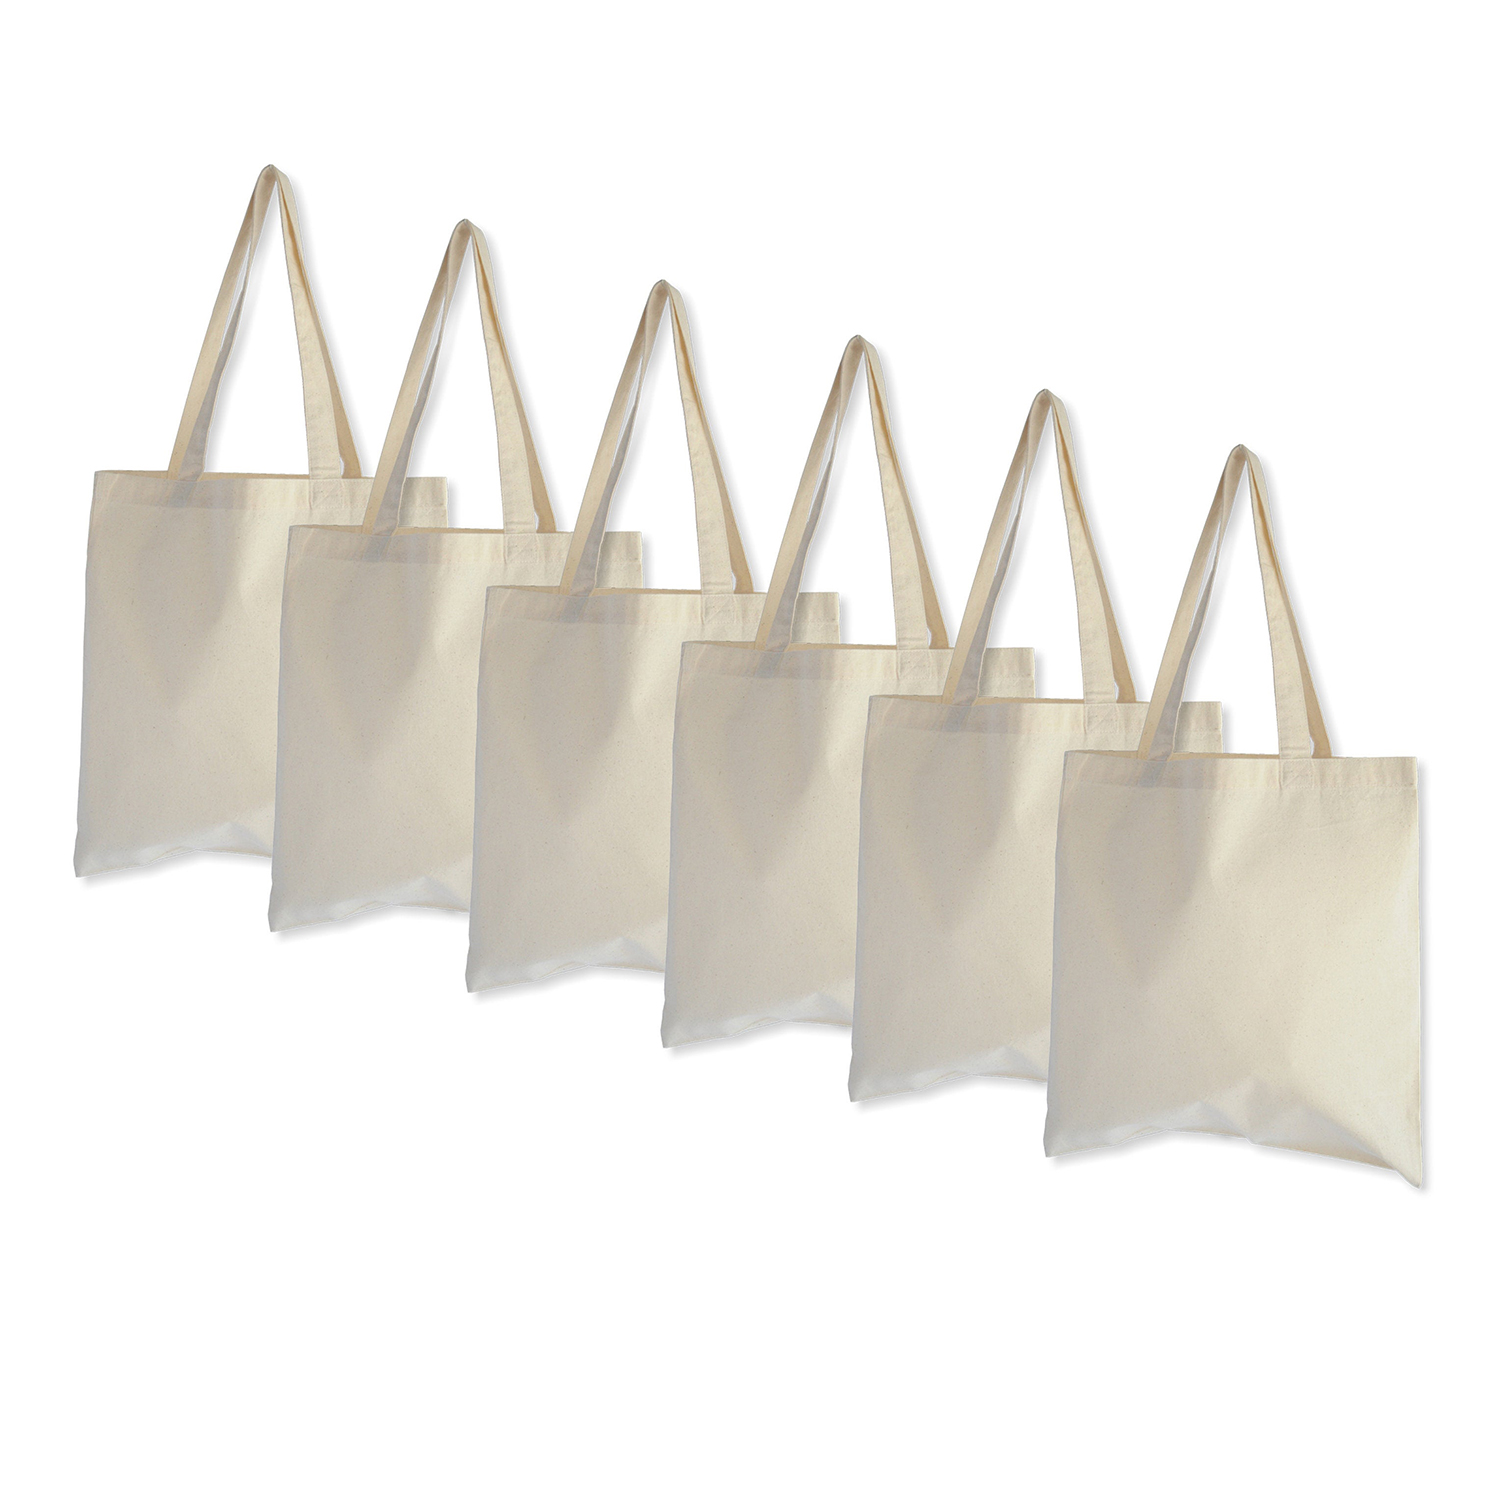 Earthwise Reusable Grocery Bags X-Large 100% Cotton Canvas Shopping Tote 3 Pack